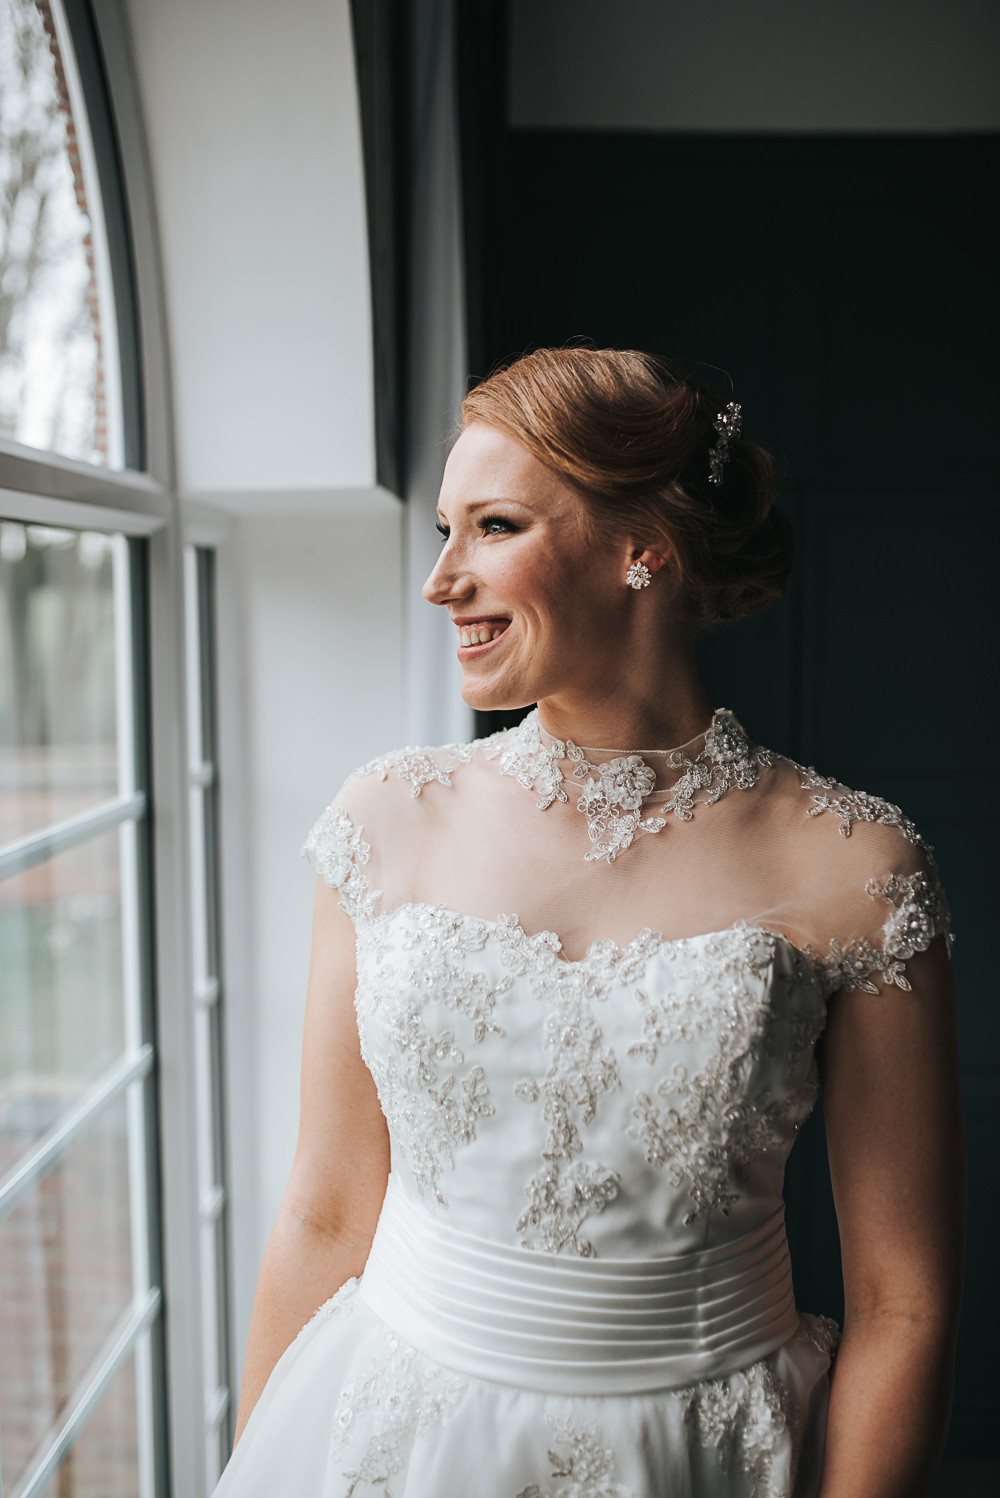 Dress Gown Bride Bridal Lace Sweetheart Folly Farmhouse Mackworth Wedding Pear&Bear Photography